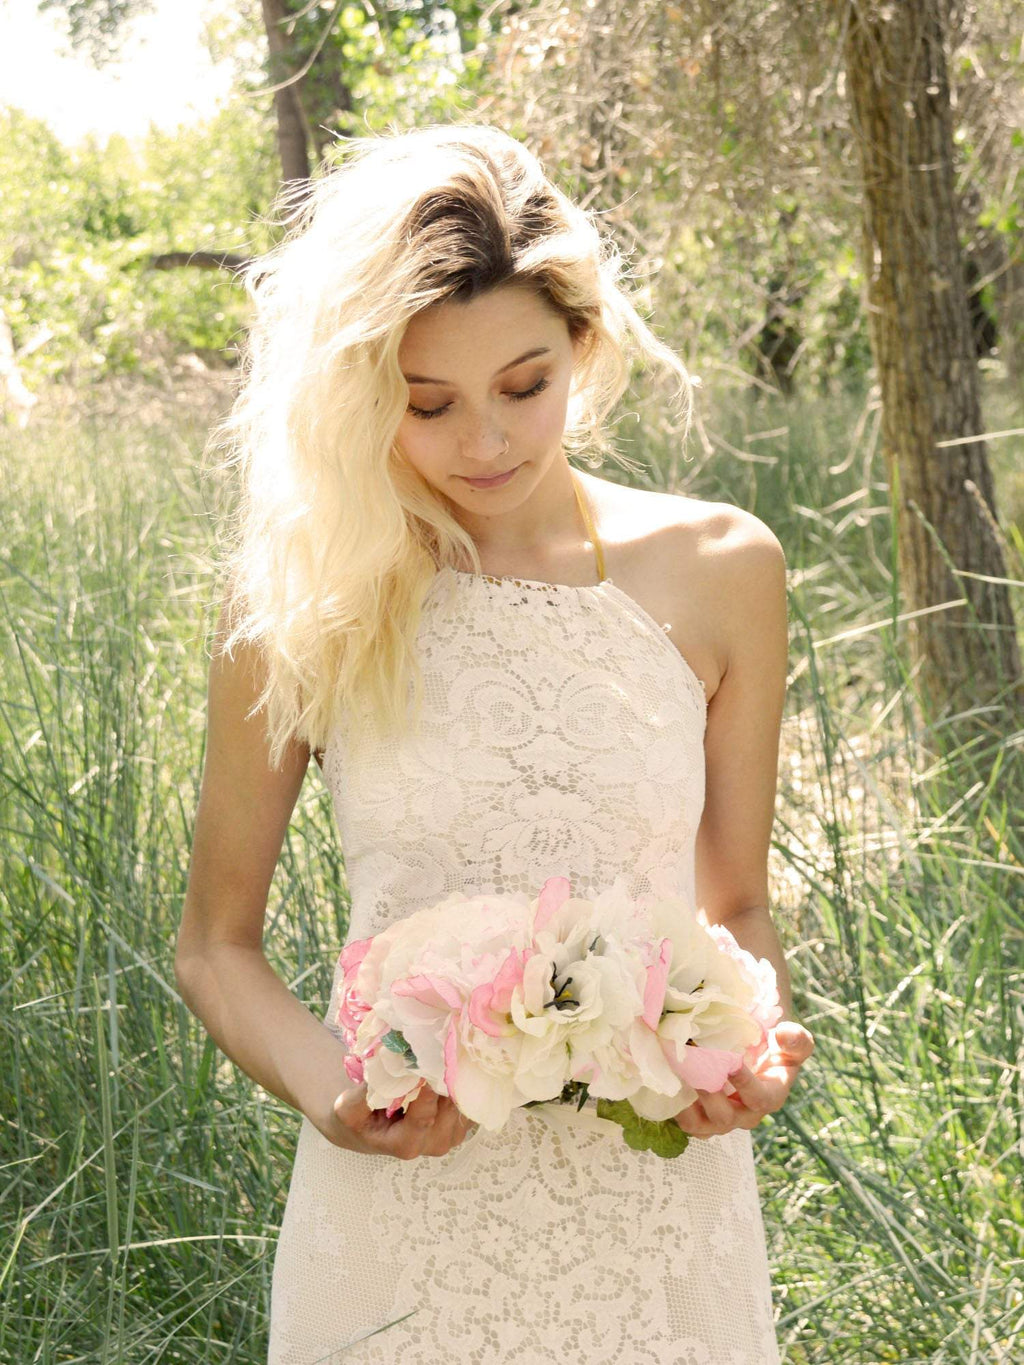 blonde bride with pink and white flower crown